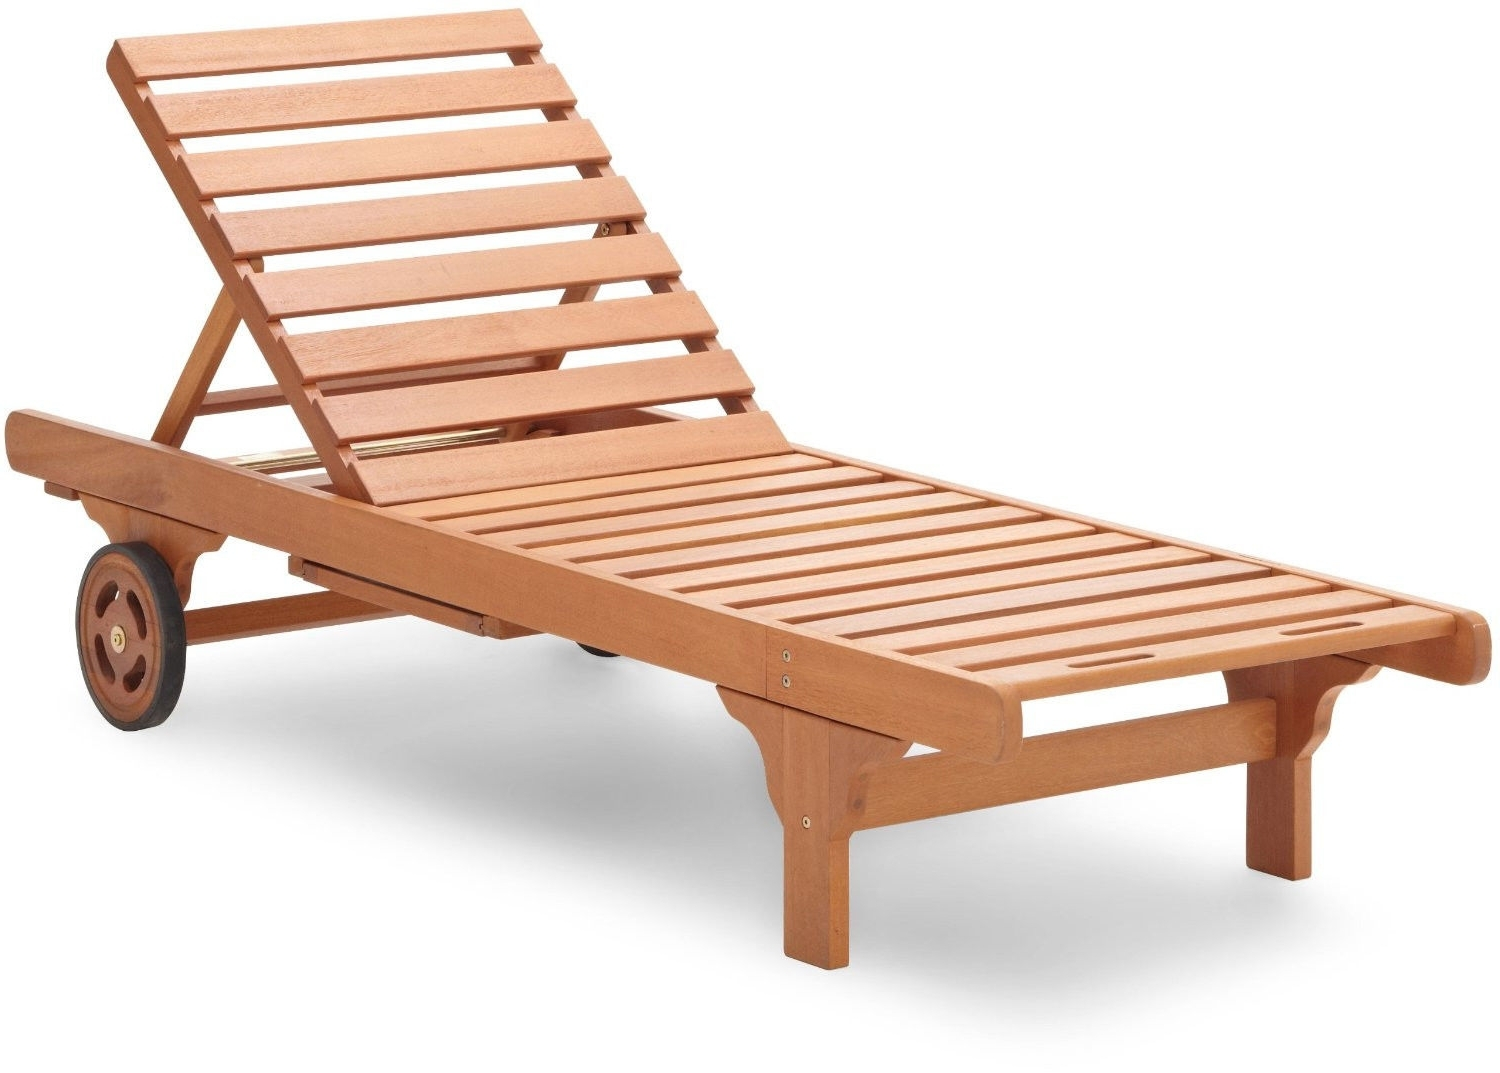 Diy Outdoor Chaise Lounge Chairs Intended For Most Current Wooden Chaise Lounge – Patio Chaise Lounge Ikea, Outdoor Chaise (View 11 of 15)